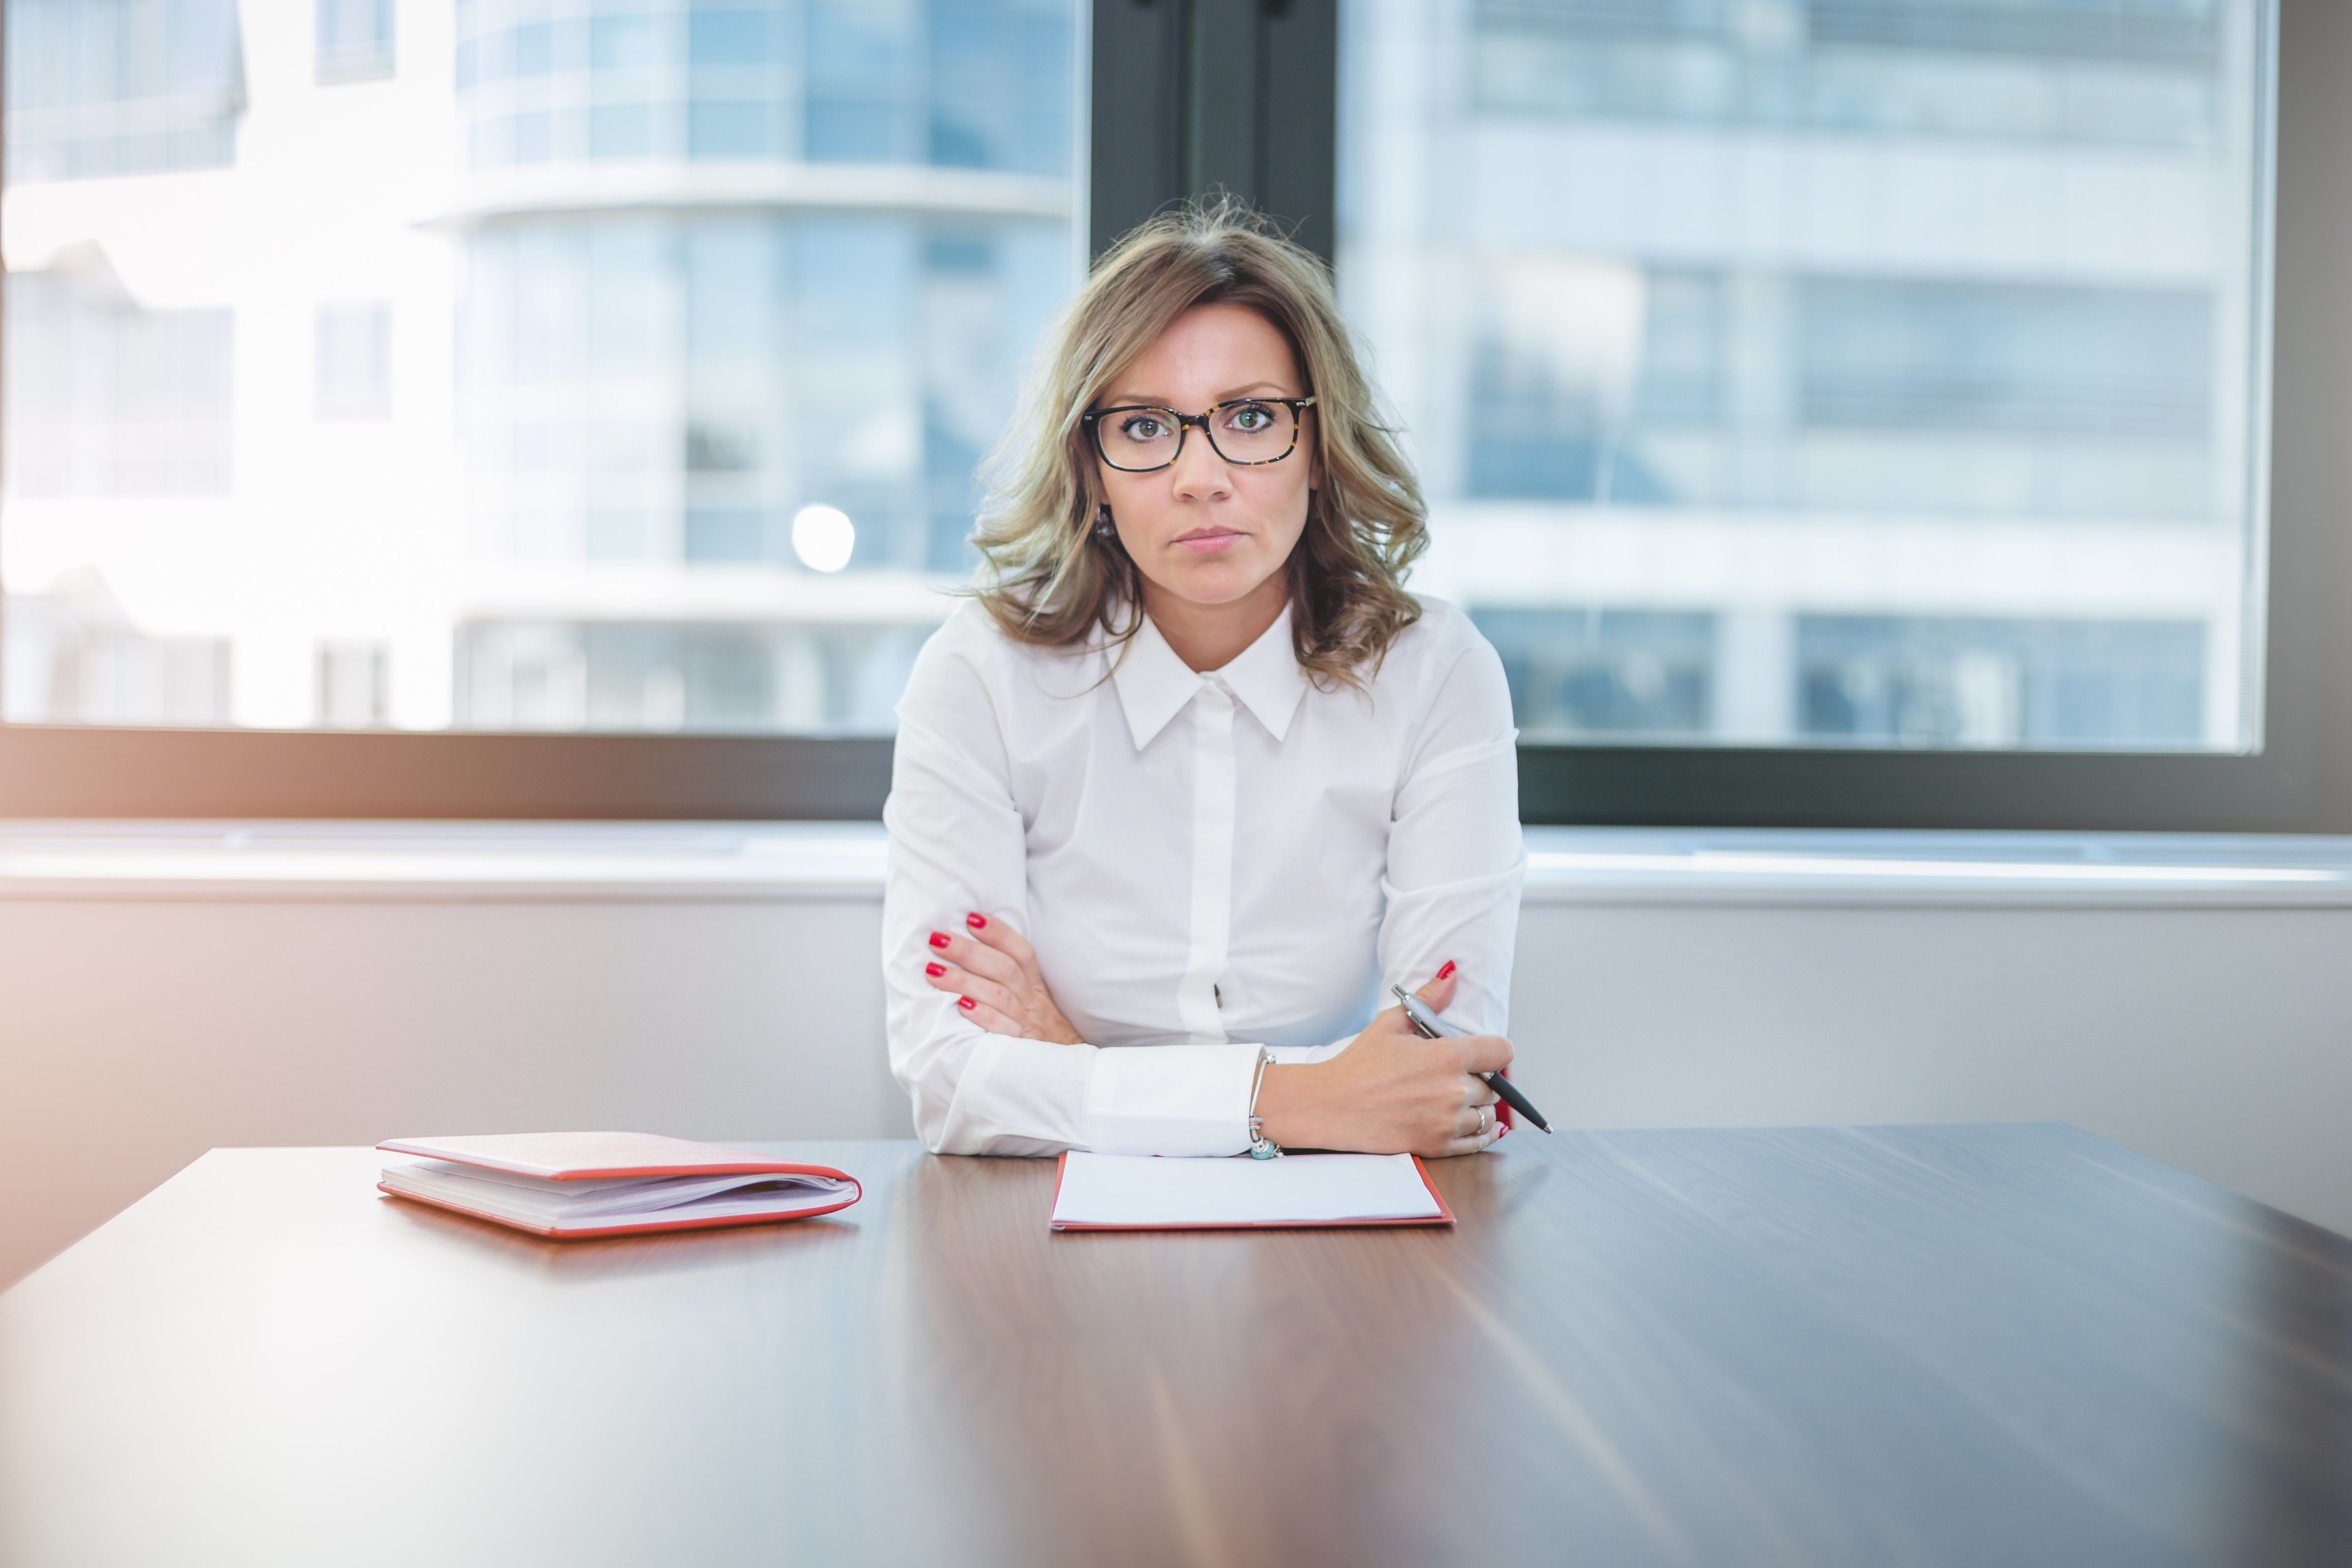 13 Mistakes That Could Ruin Your Job Interview, According To Hiring